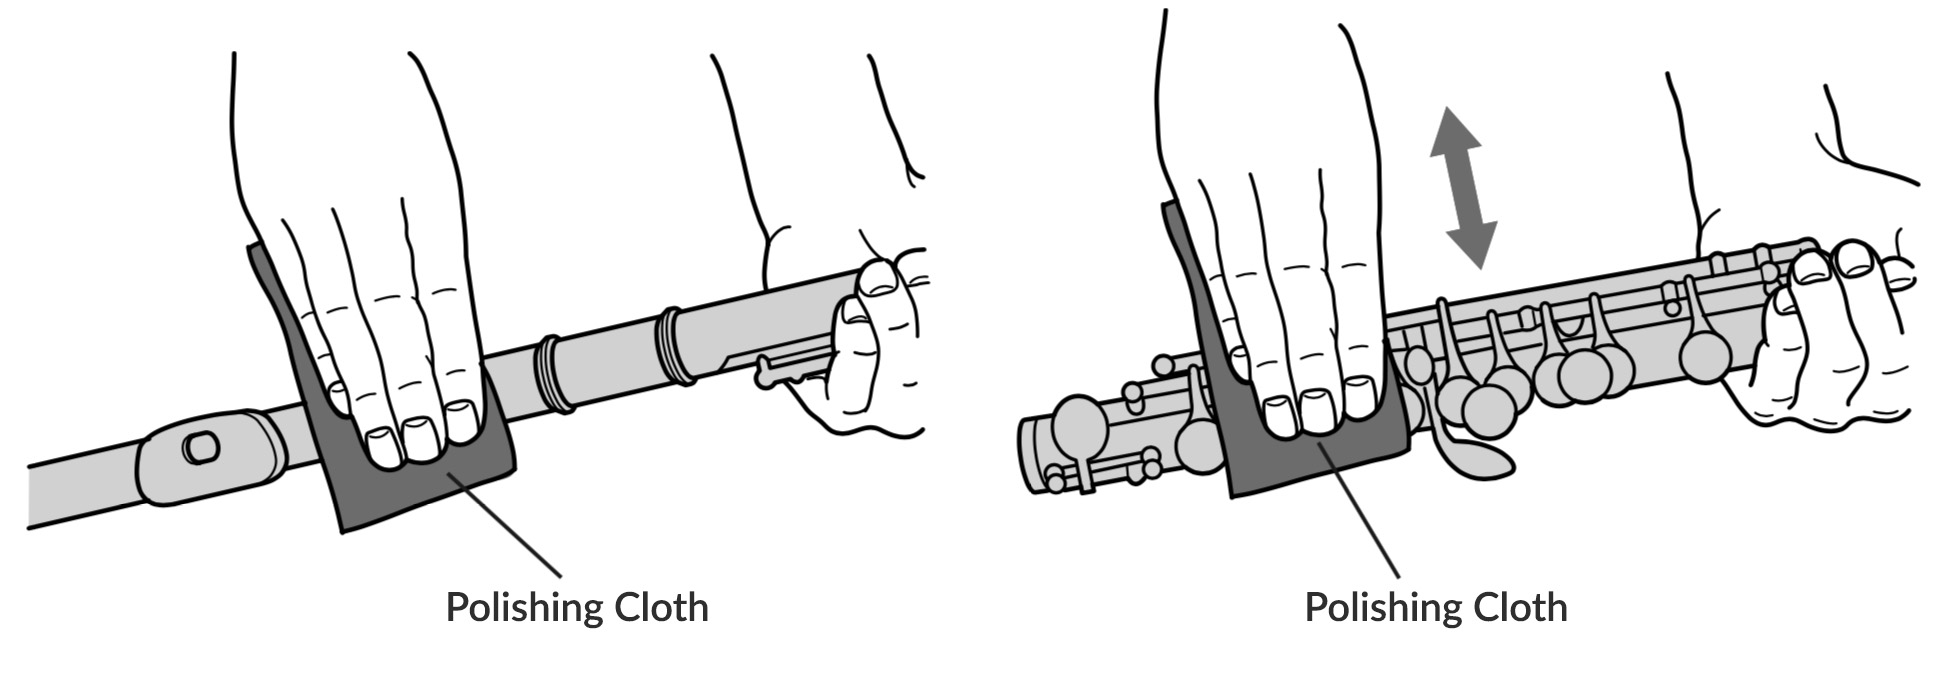 Removing dirt and residue from a flute's outer body using a polishing cloth